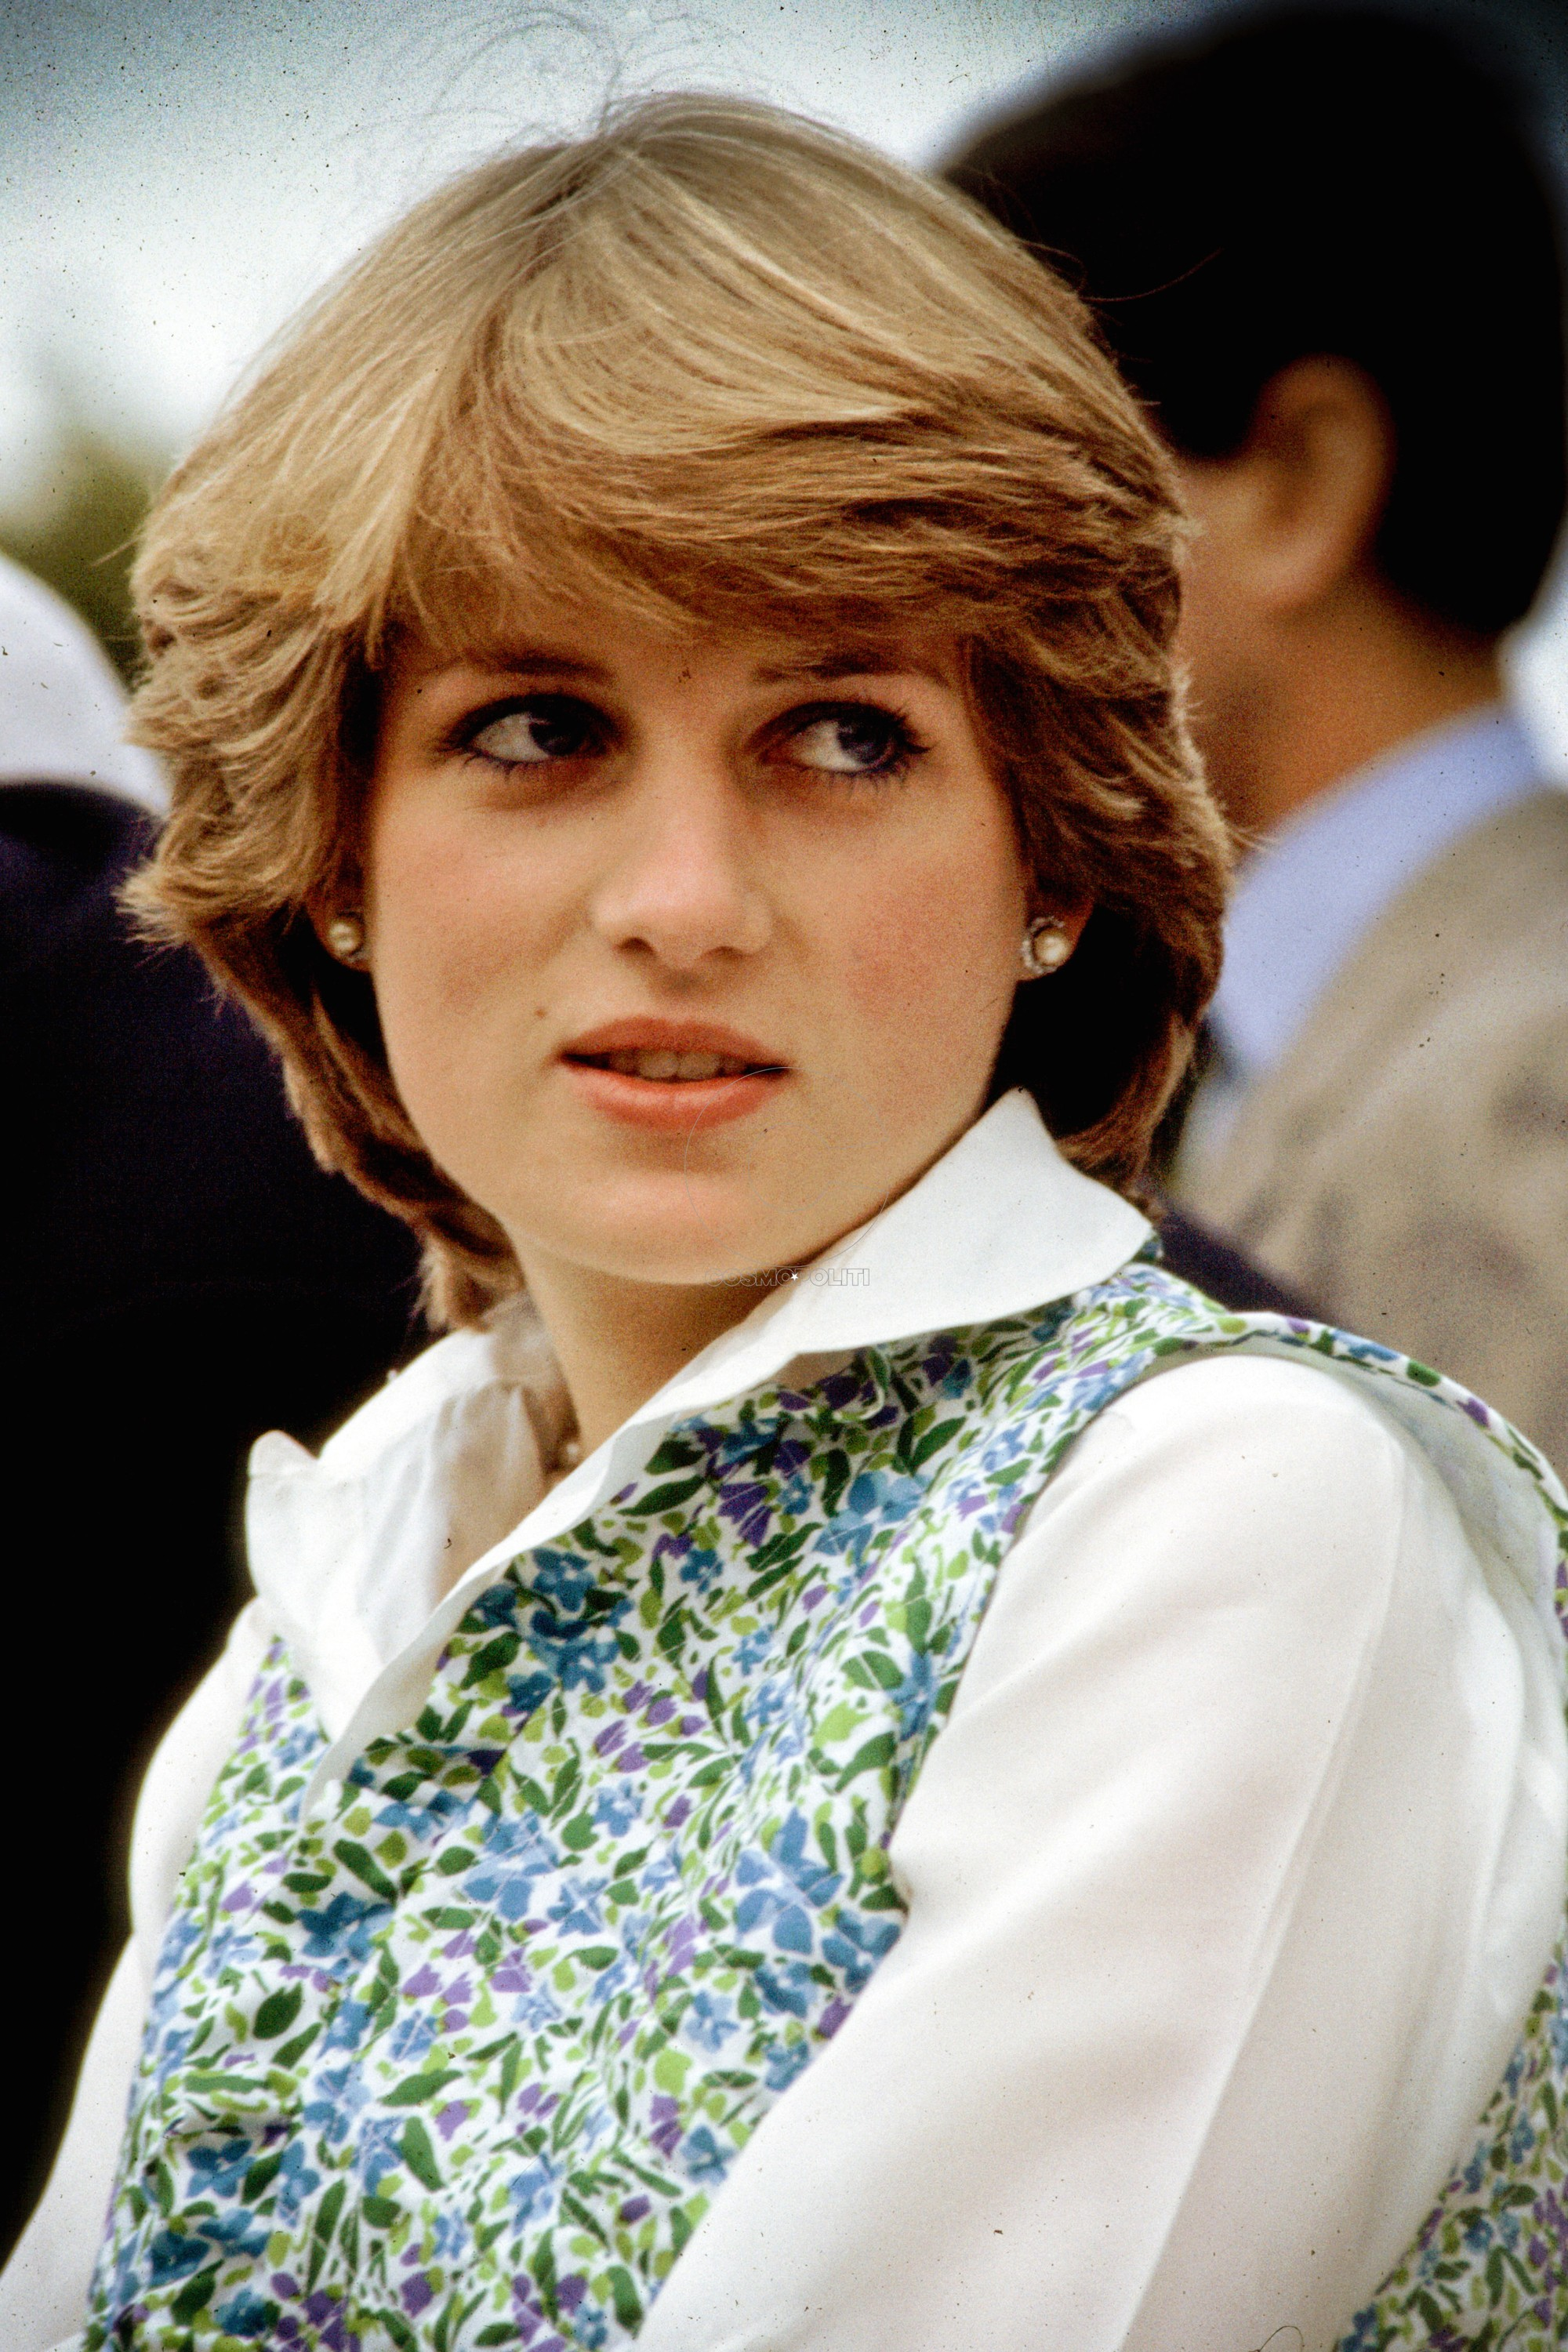 Lady Diana Spencer, the future Diana, Princess of Wales (1961 - 1997) at a polo match in Hampshire, 1981. It was on this occasion that she was driven to tears by press intrusion. (Photo by Kypros/Getty Images)